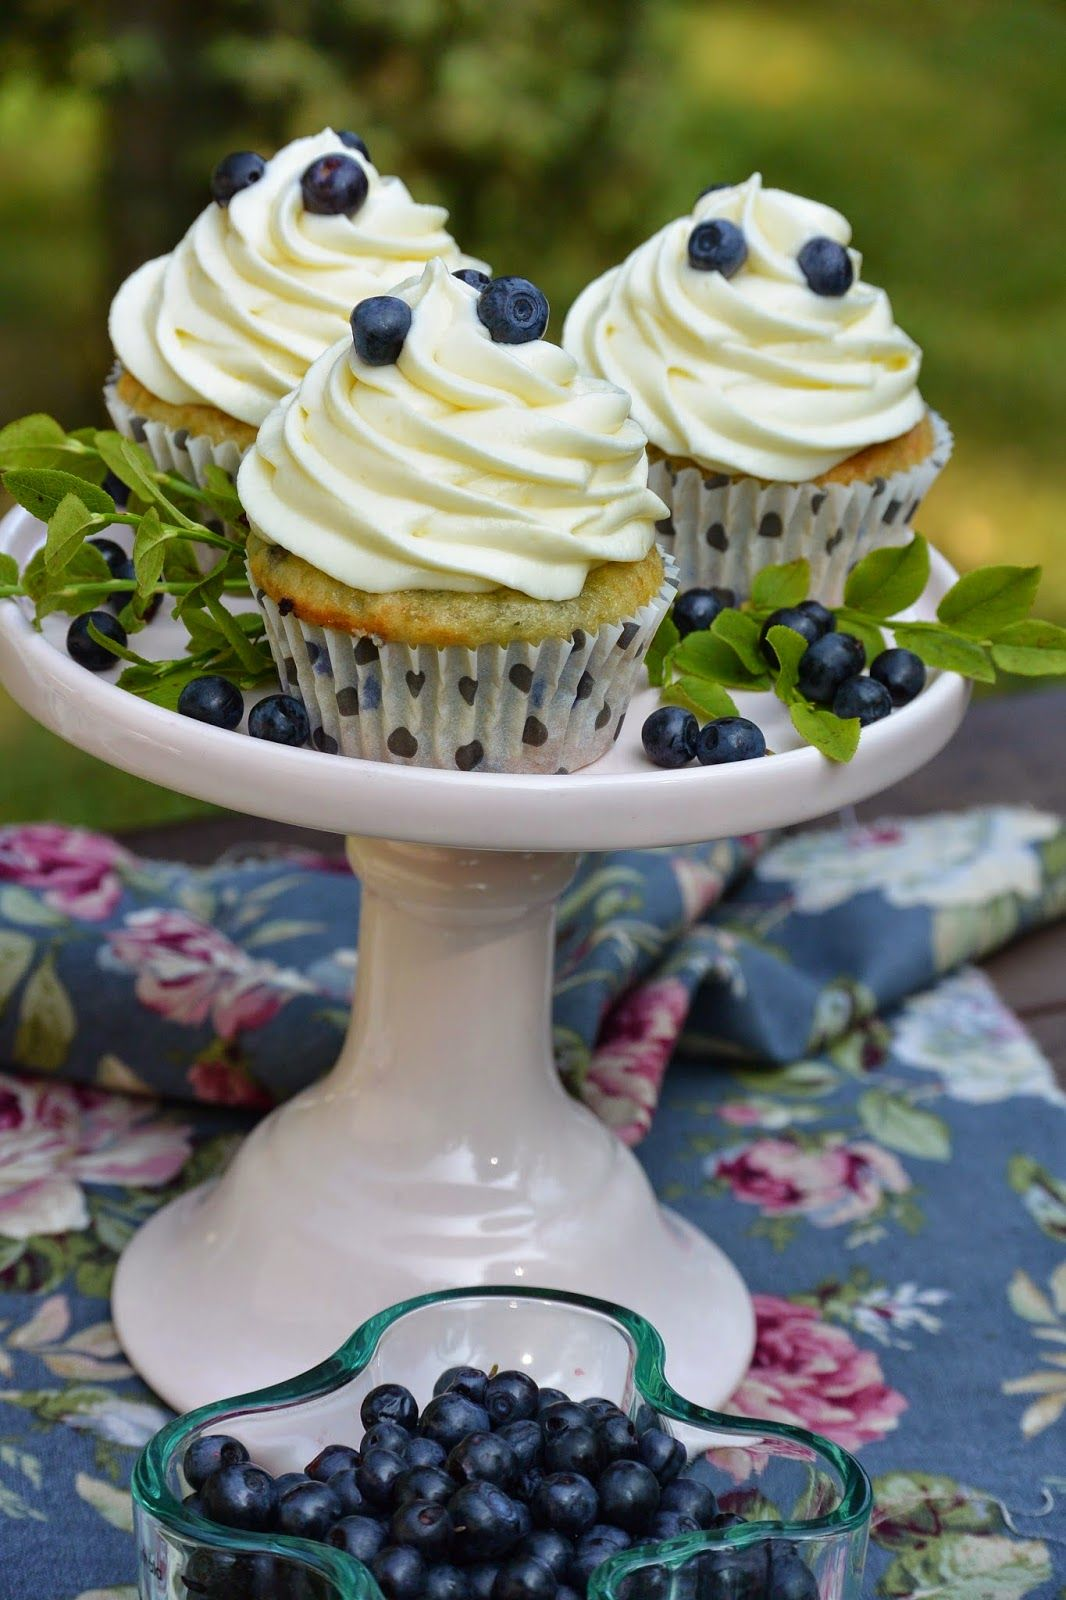 Celebration Treats 4U: Blueberry Dream Cupcakes